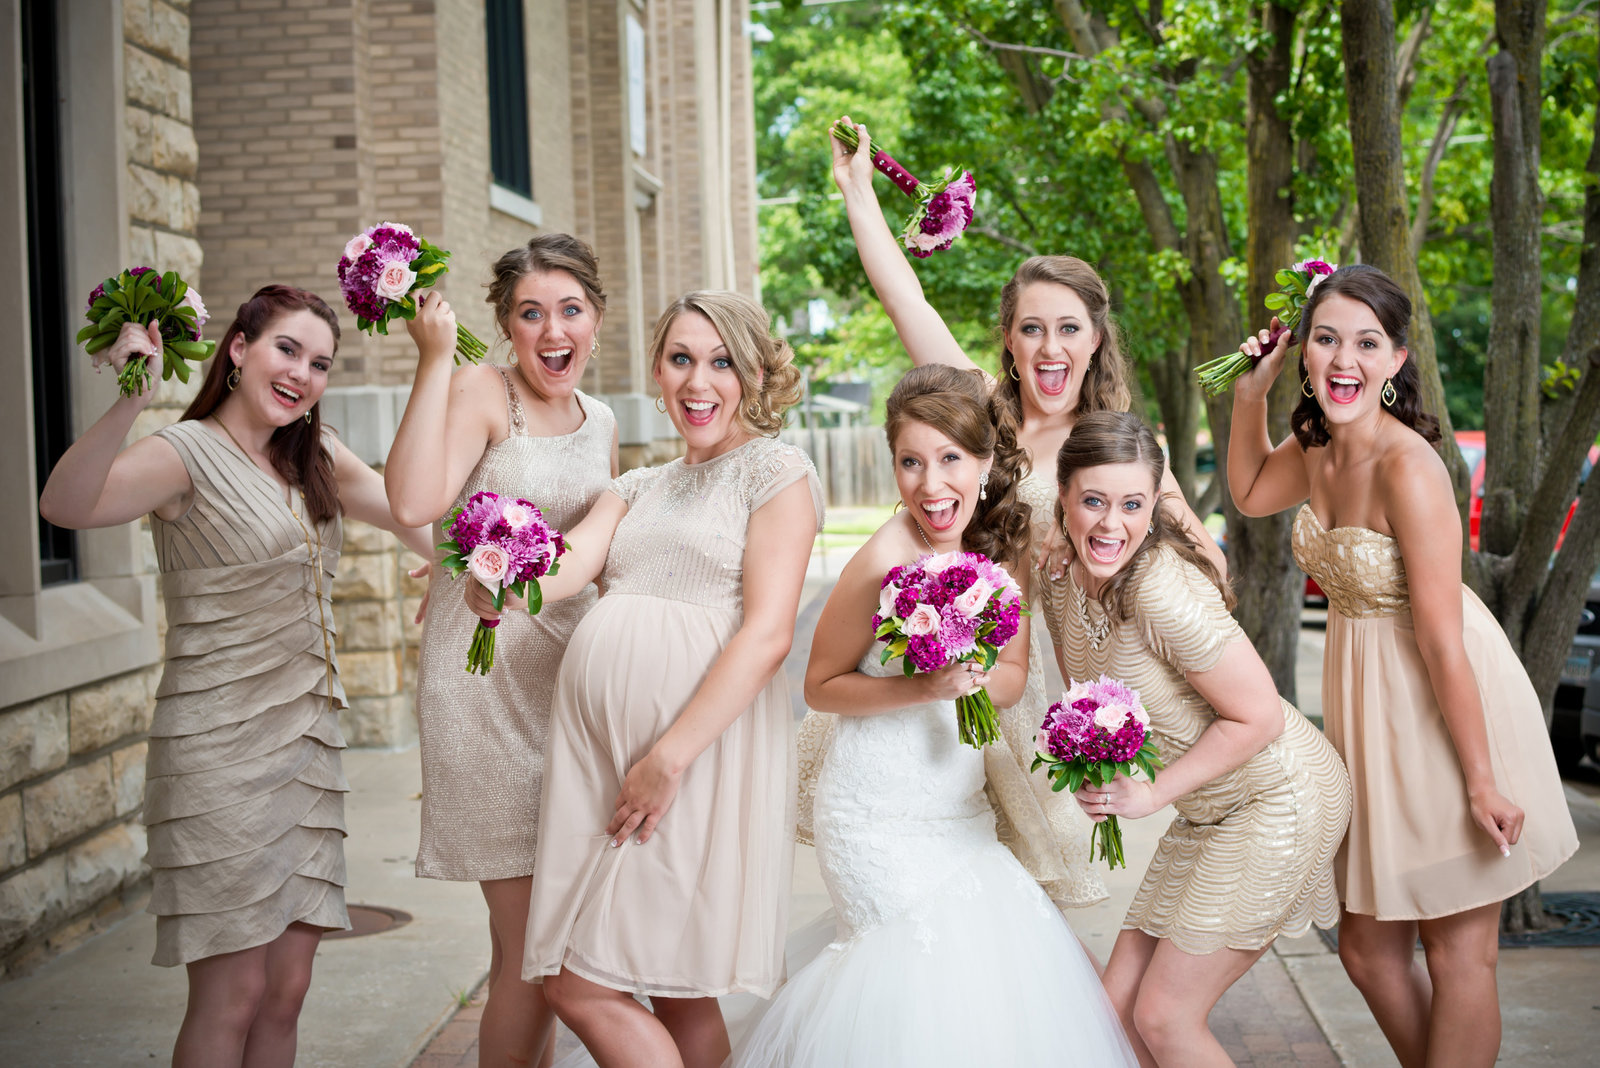 kc-professional-wedding-photographers-0014